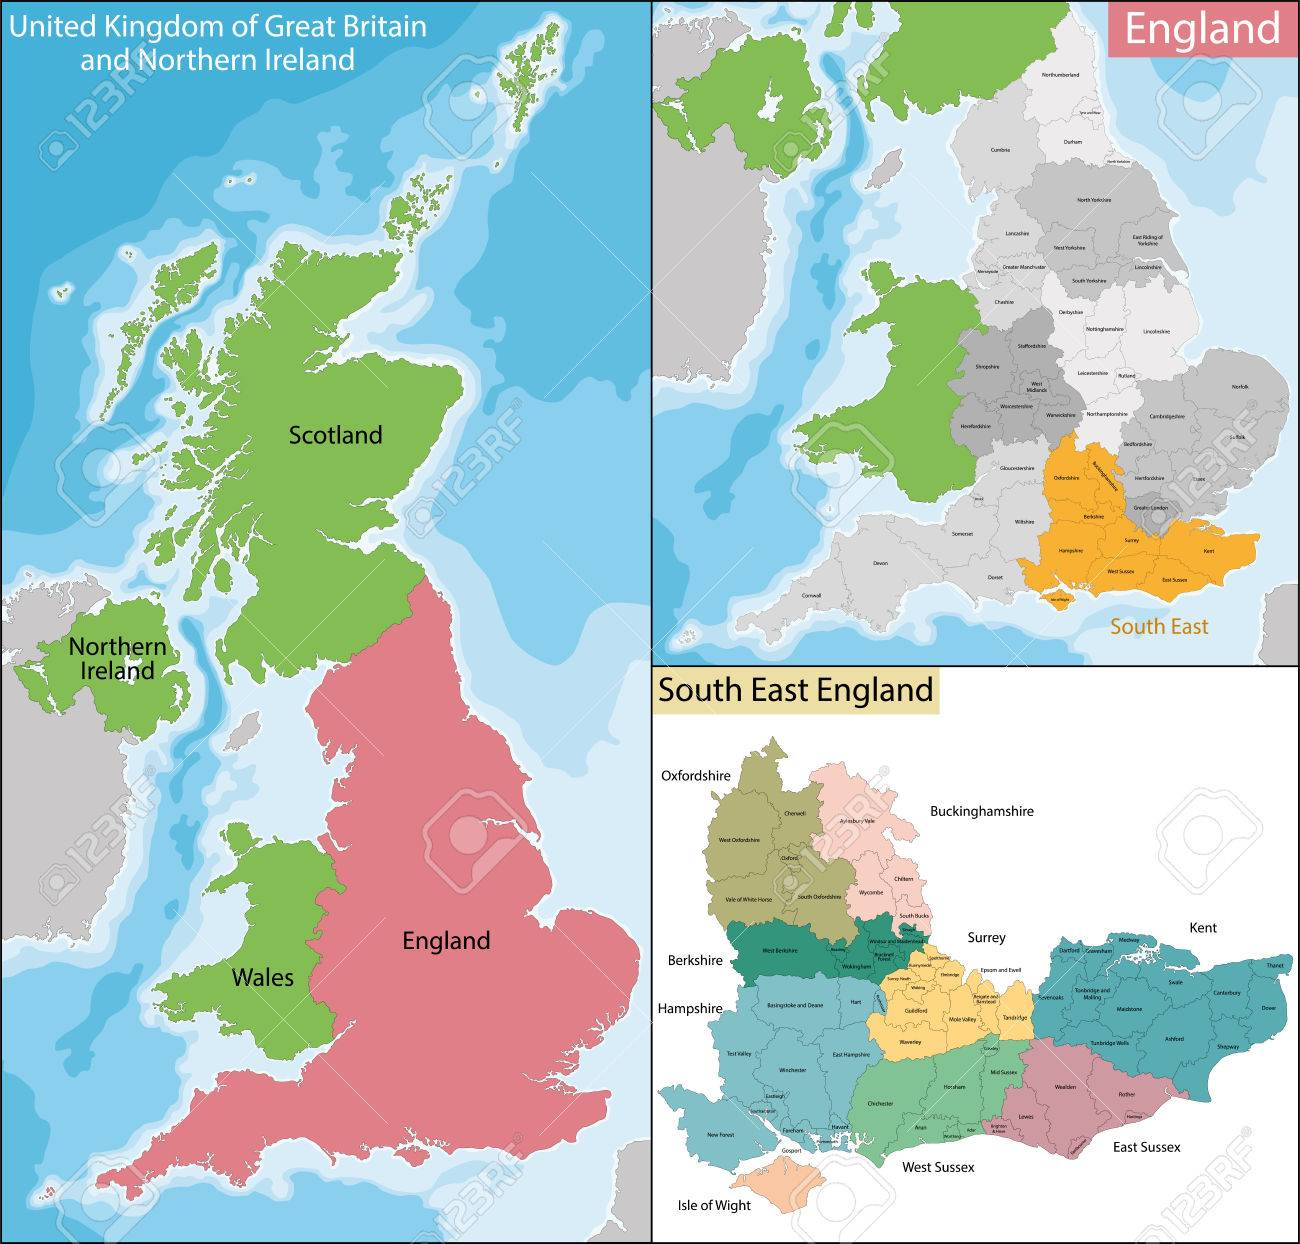 Map Of England South.Map Of The Subdivisions Of England With The South East That Is